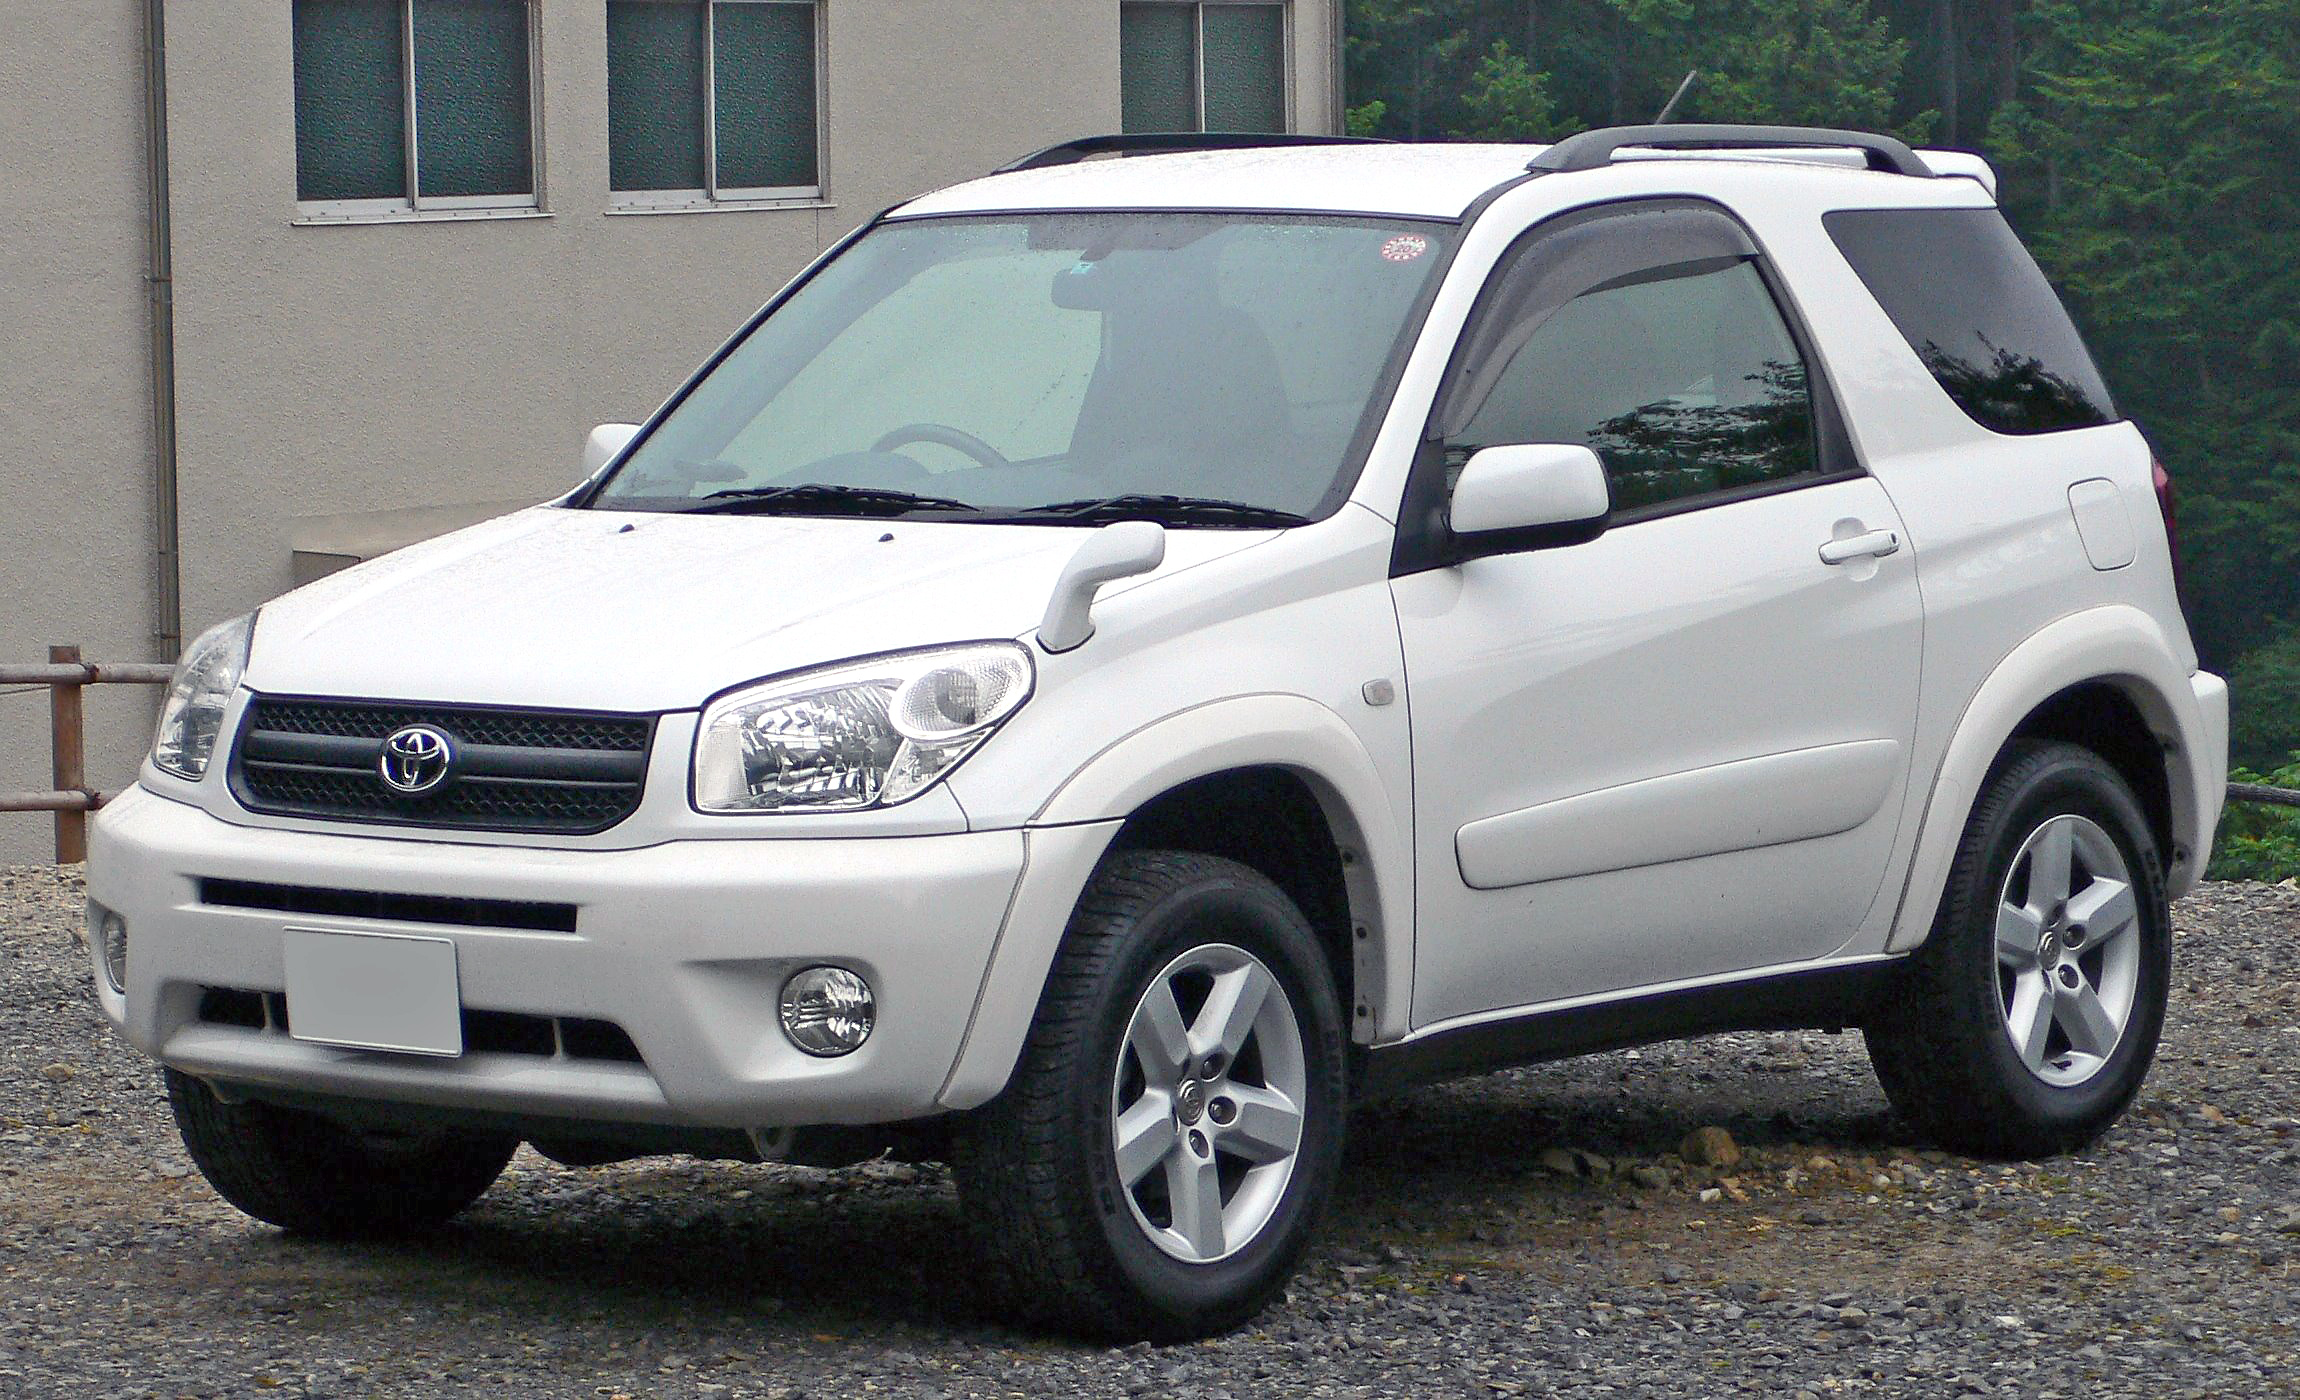 Toyota rav4 forums